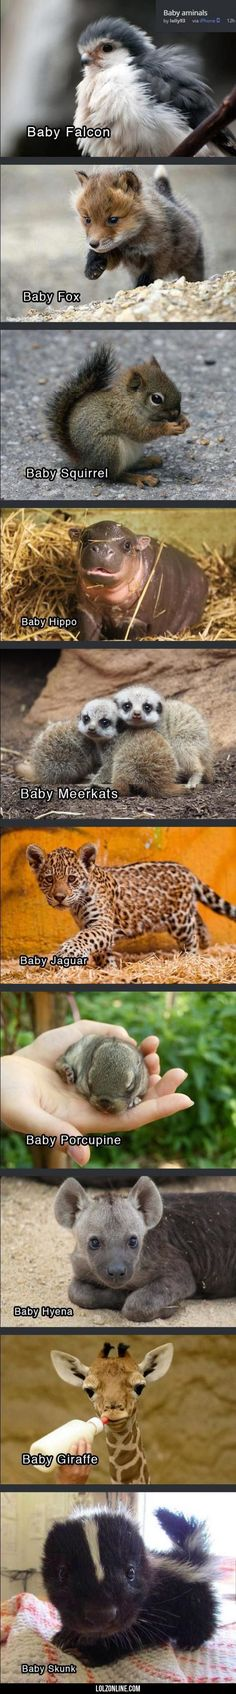 Baby animals#funny #lol #lolzonline